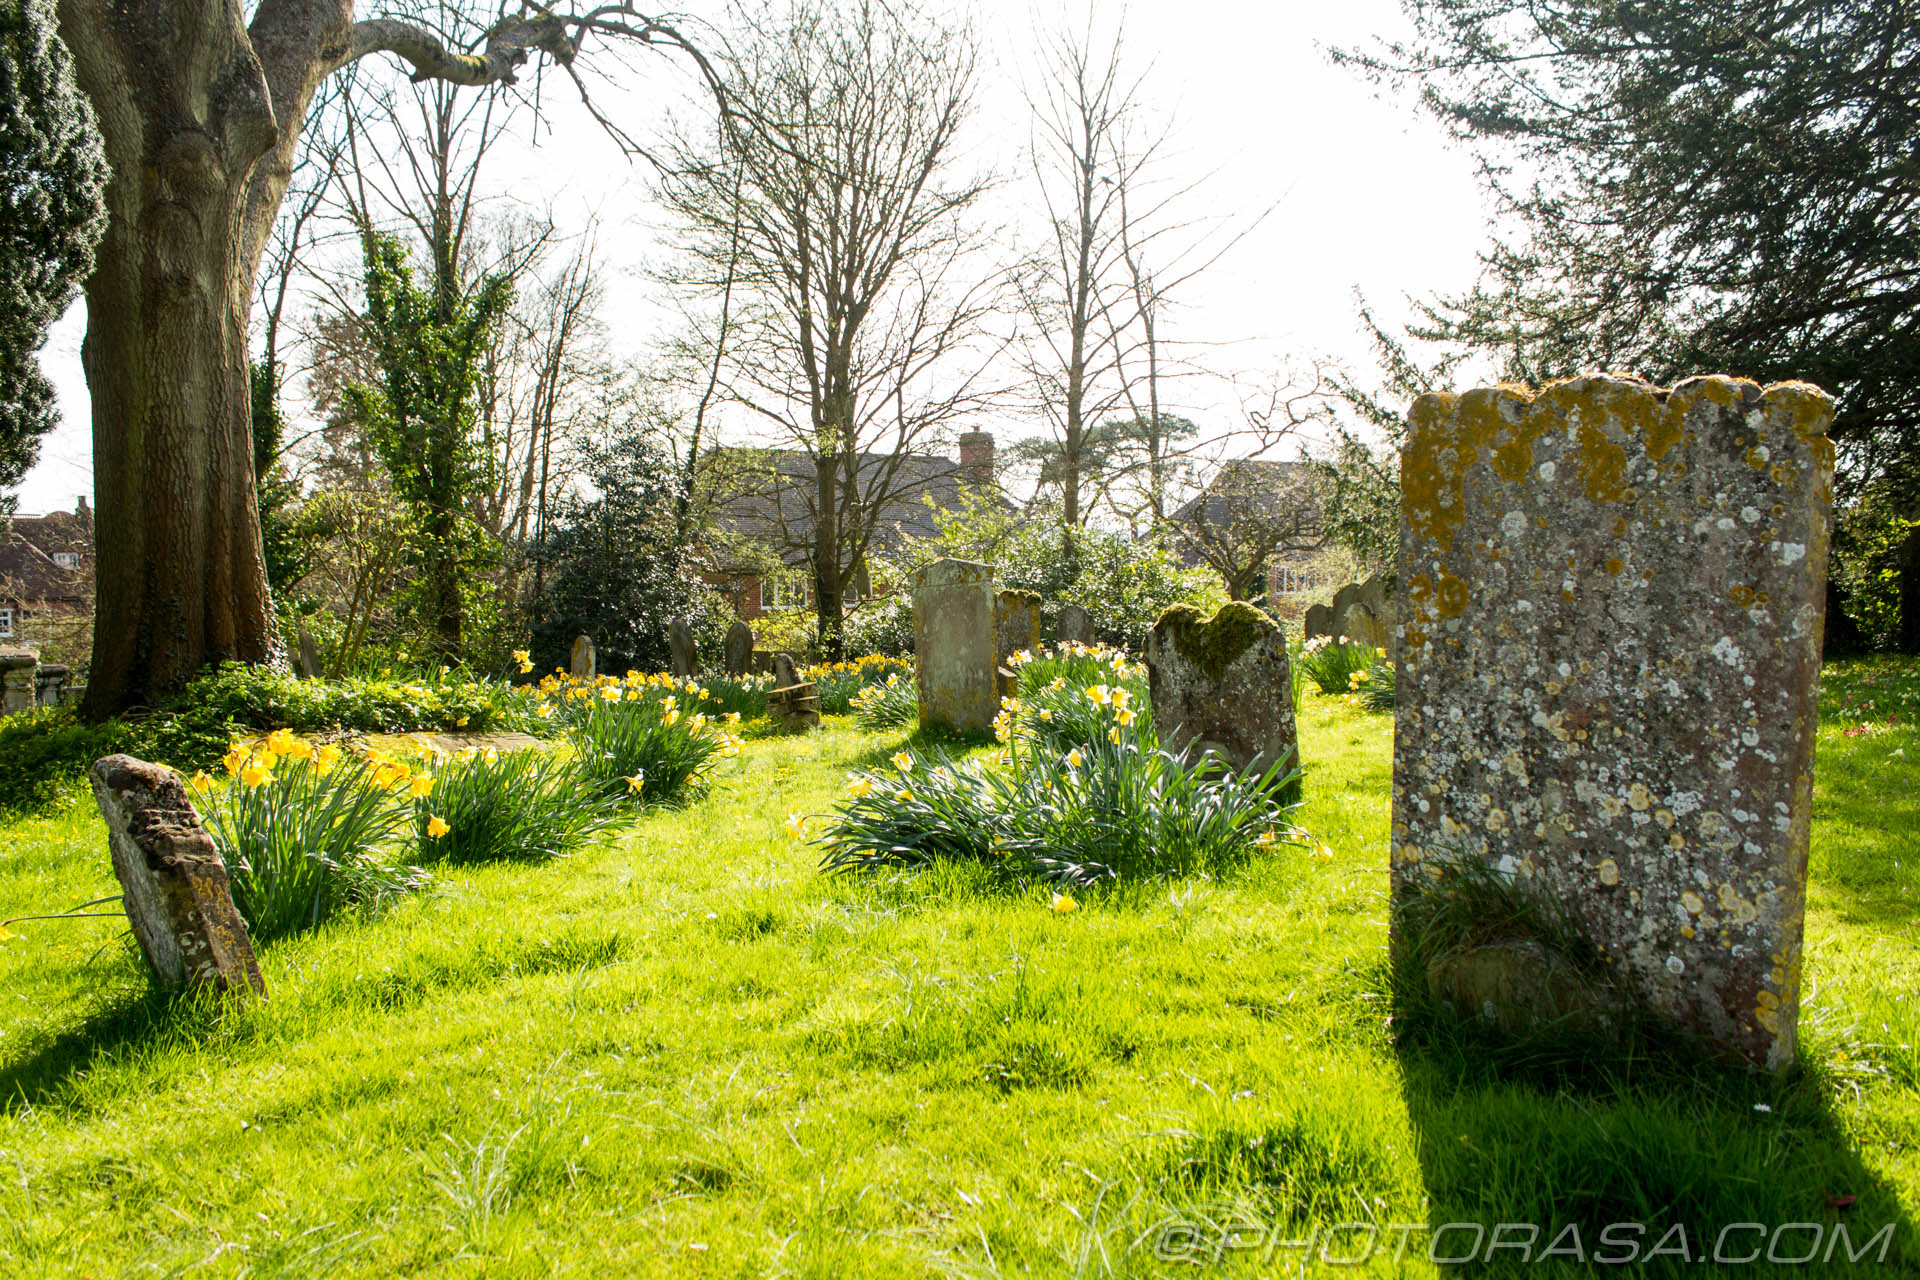 http://photorasa.com/saints-church-staplehurst-kent/yellow-church-daffs/